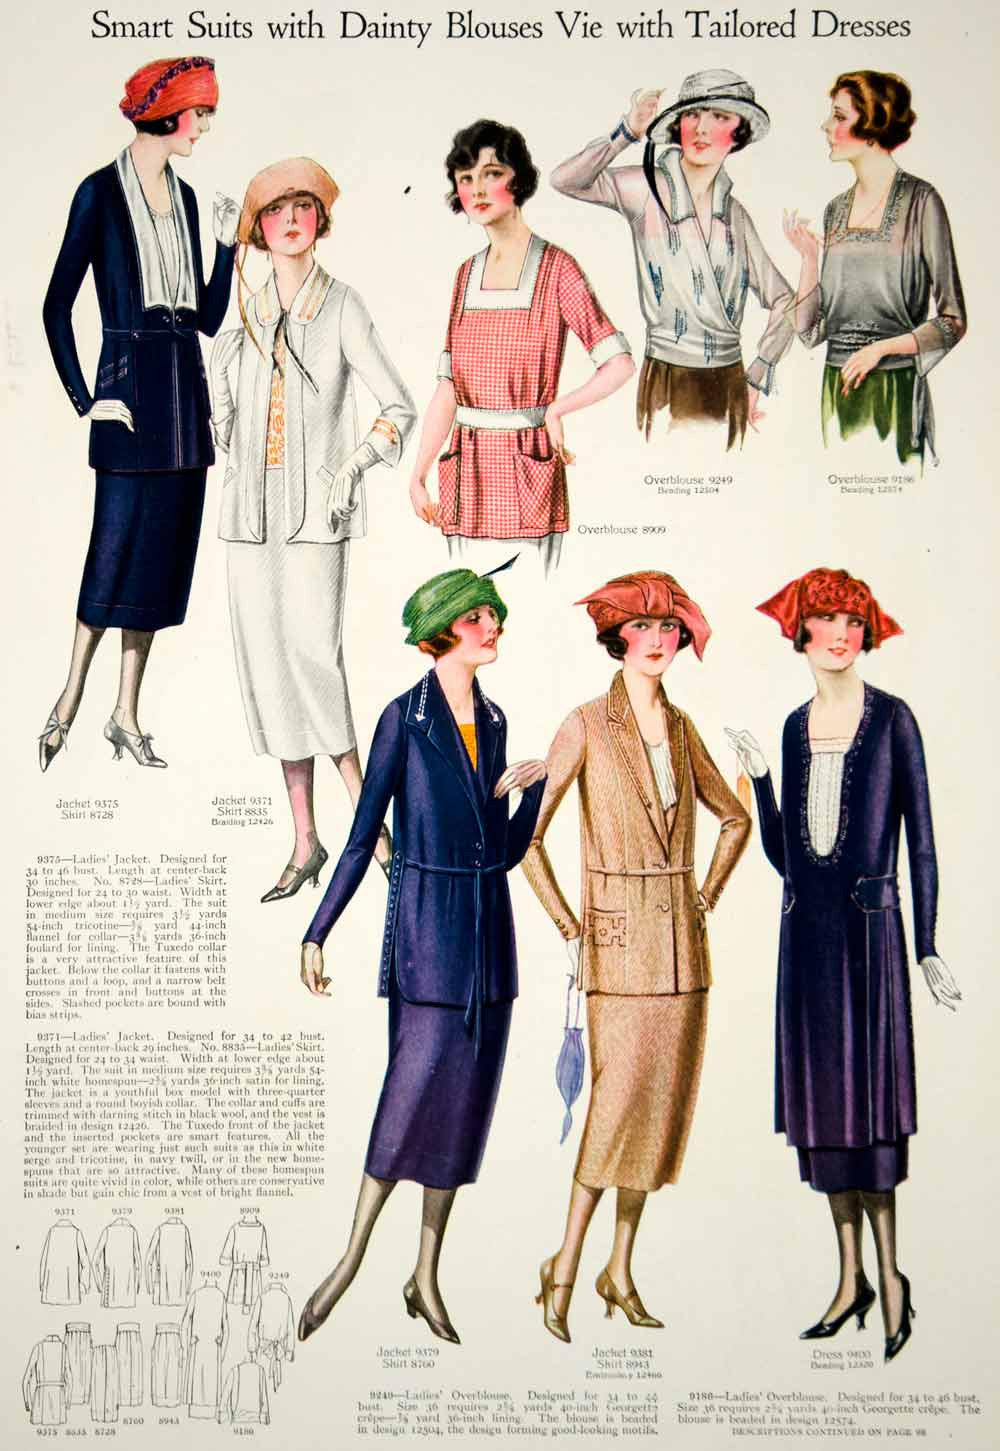 1921 Print Flapper Era Fashion Illustrations Women Spring Dresses Turban Hats - Period Paper  - 2